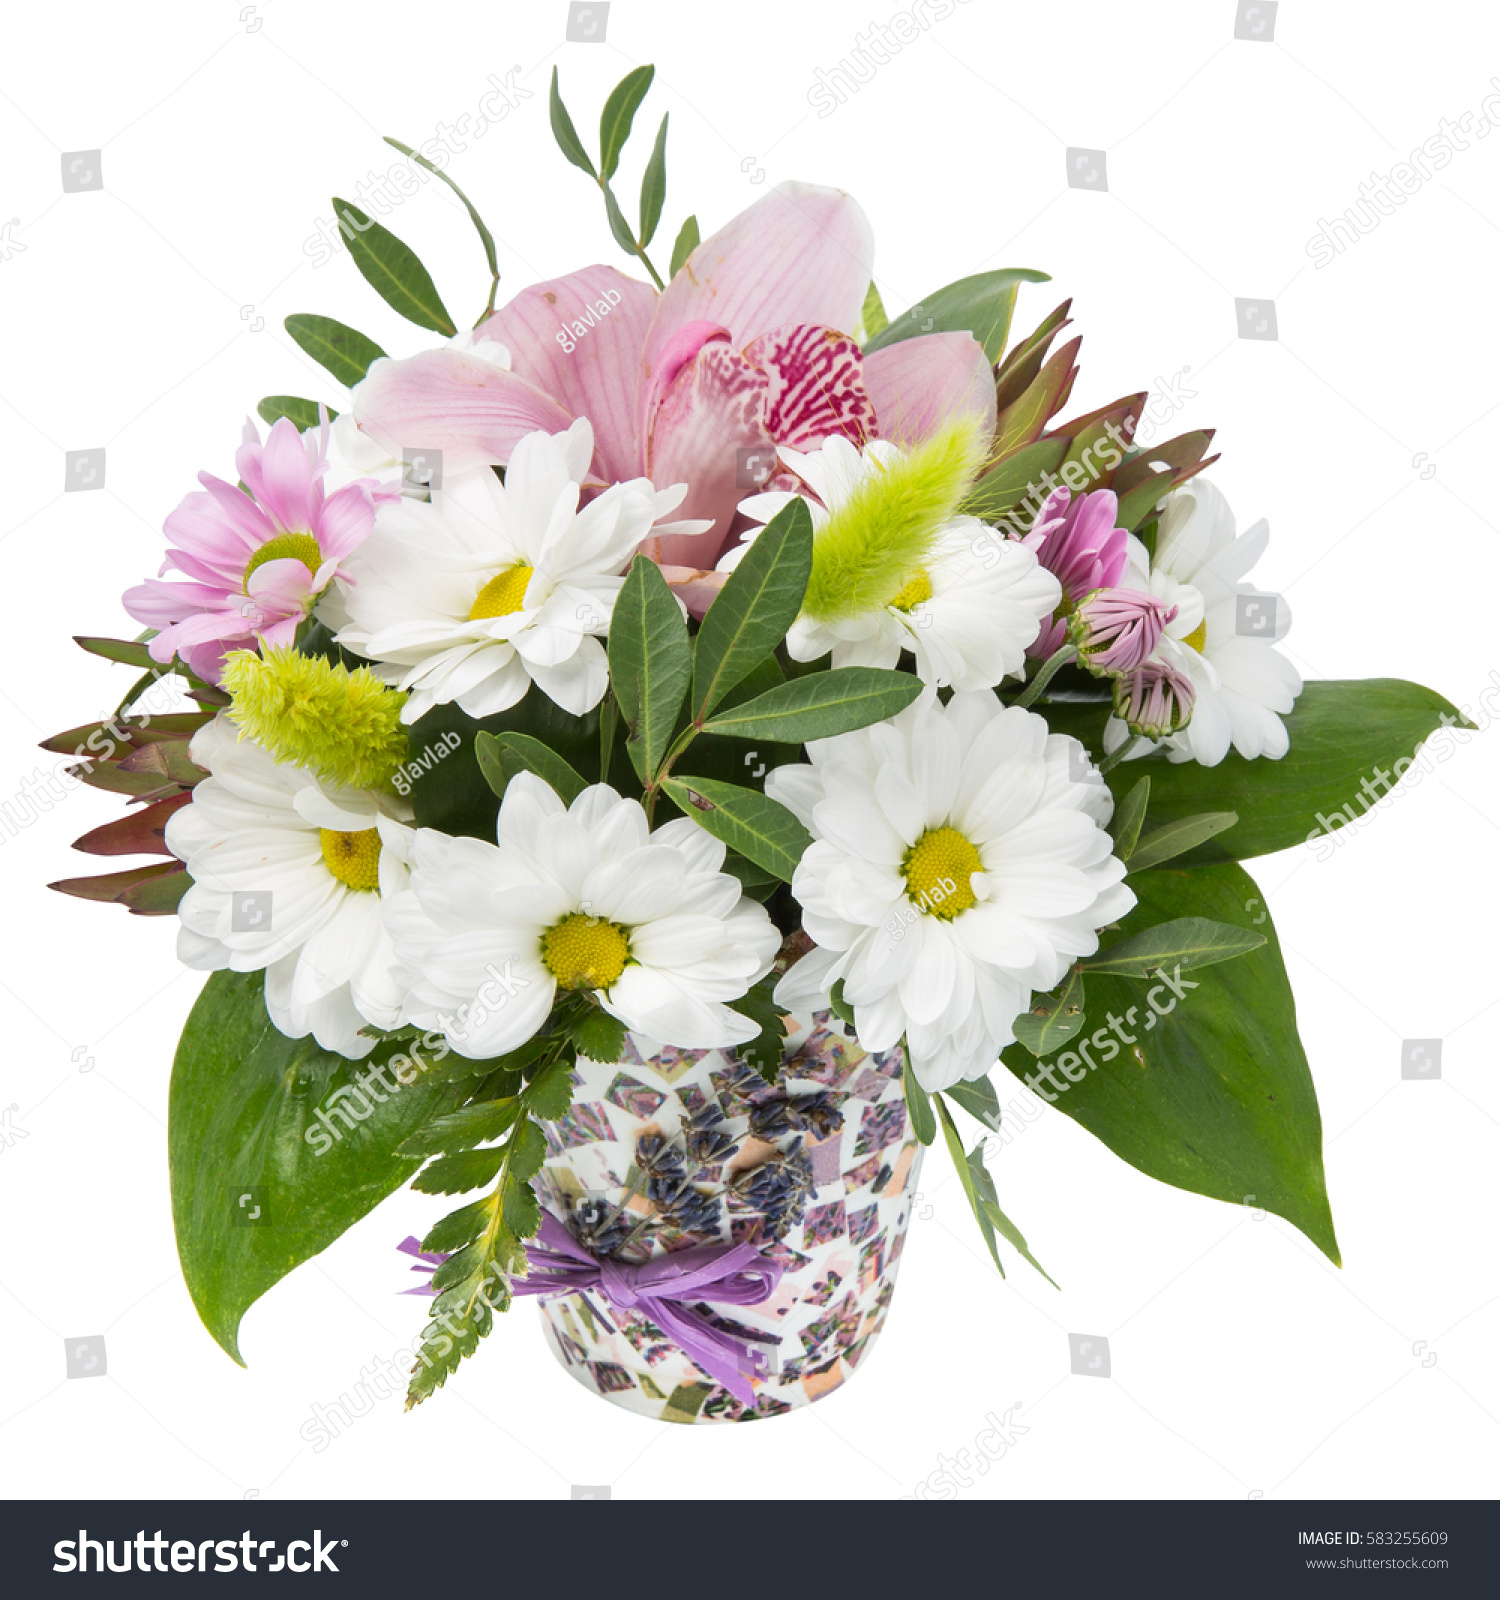 Bouquet Flowers Chamomile Gerbera Lily Spring Stock Photo (Royalty ...